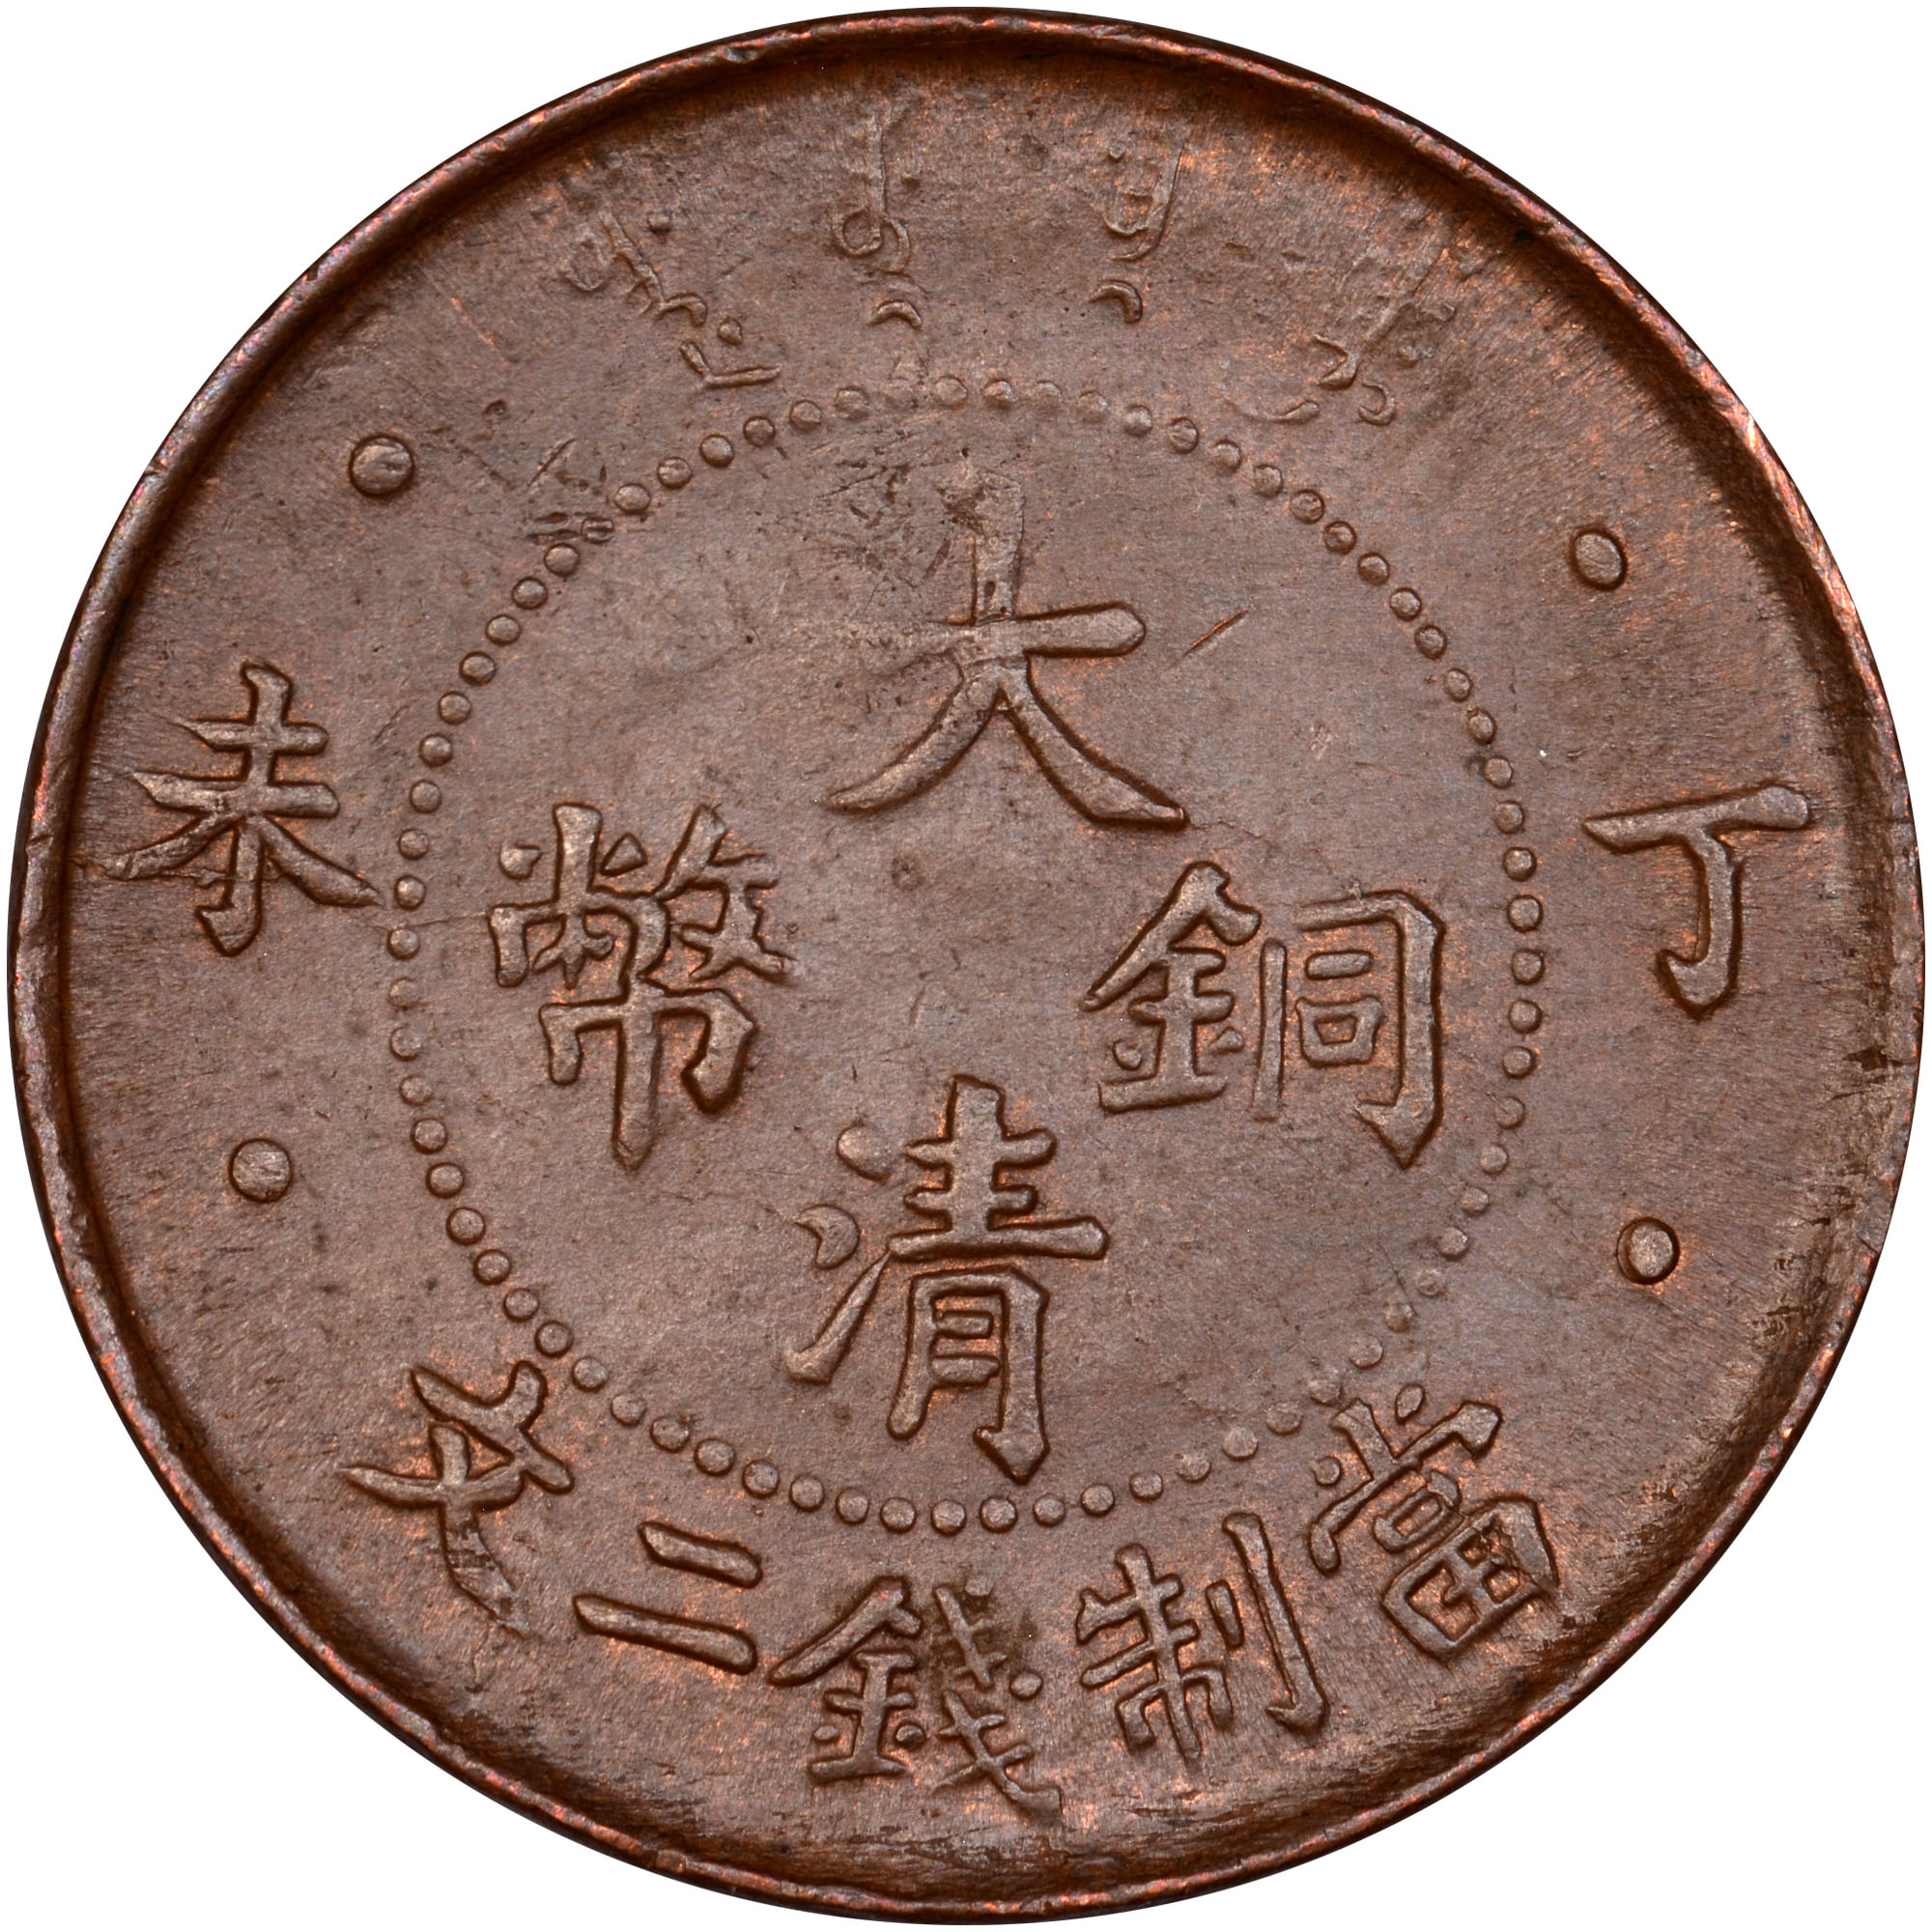 1907 China EMPIRE 2 Cash obverse